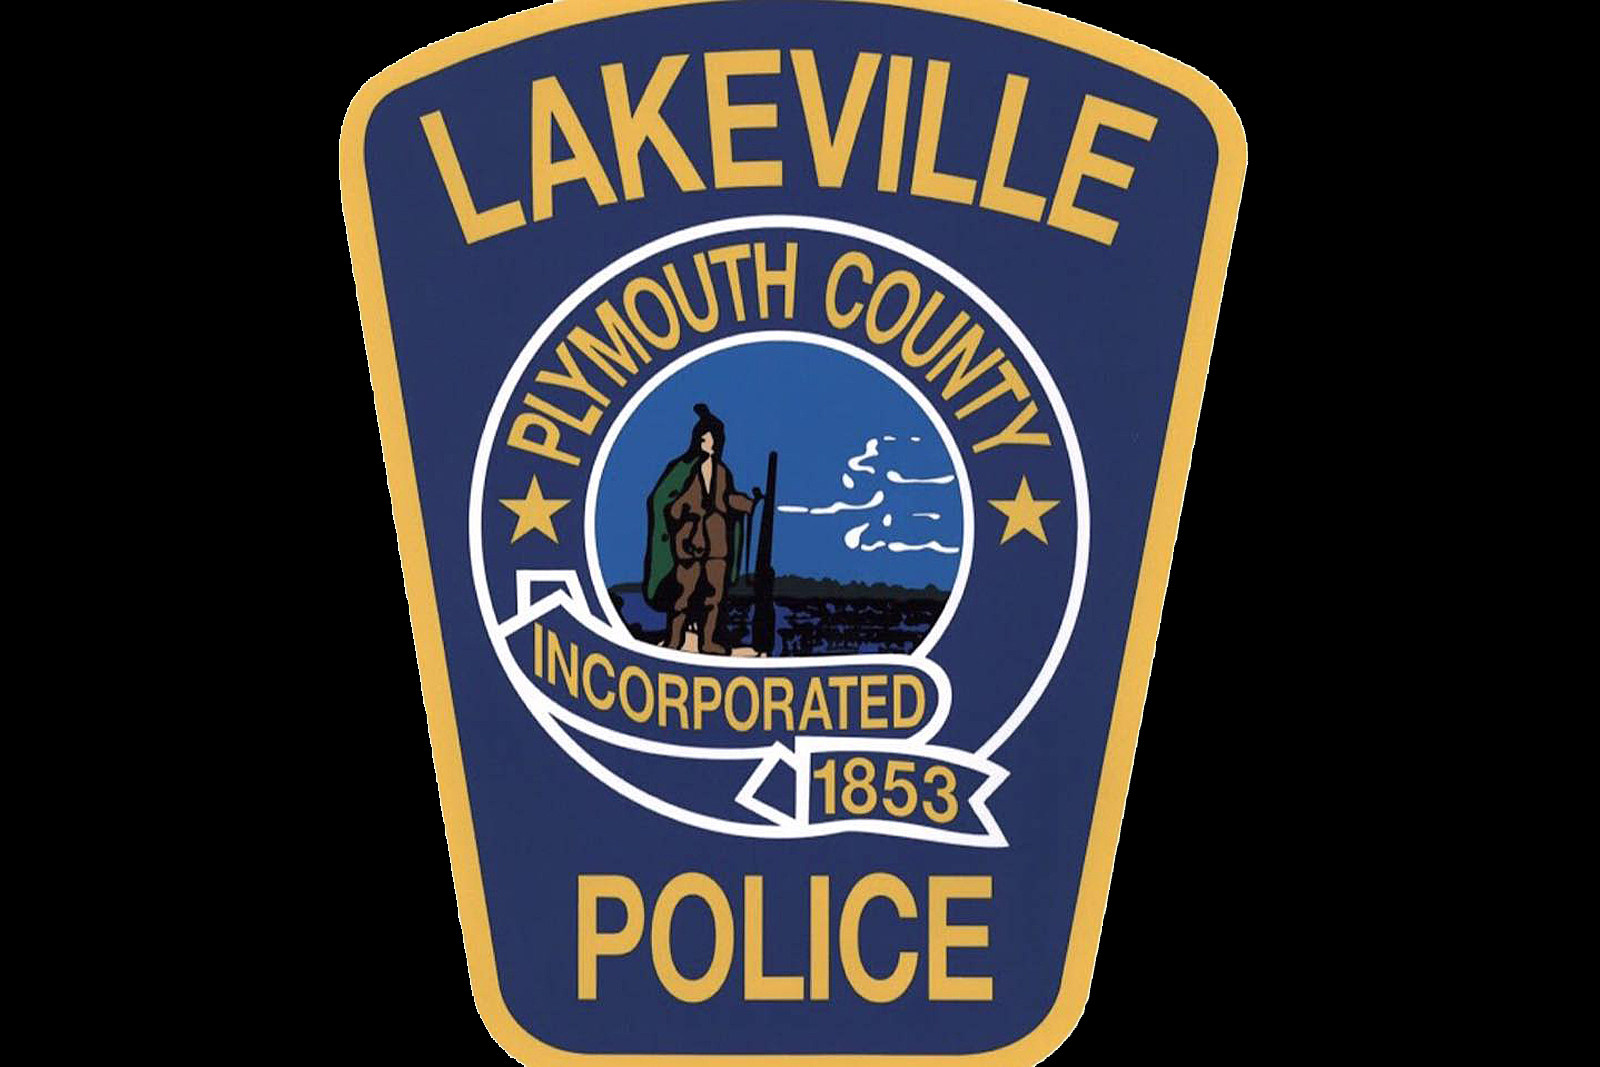 Lakeville Police Department (MA)/Facebook